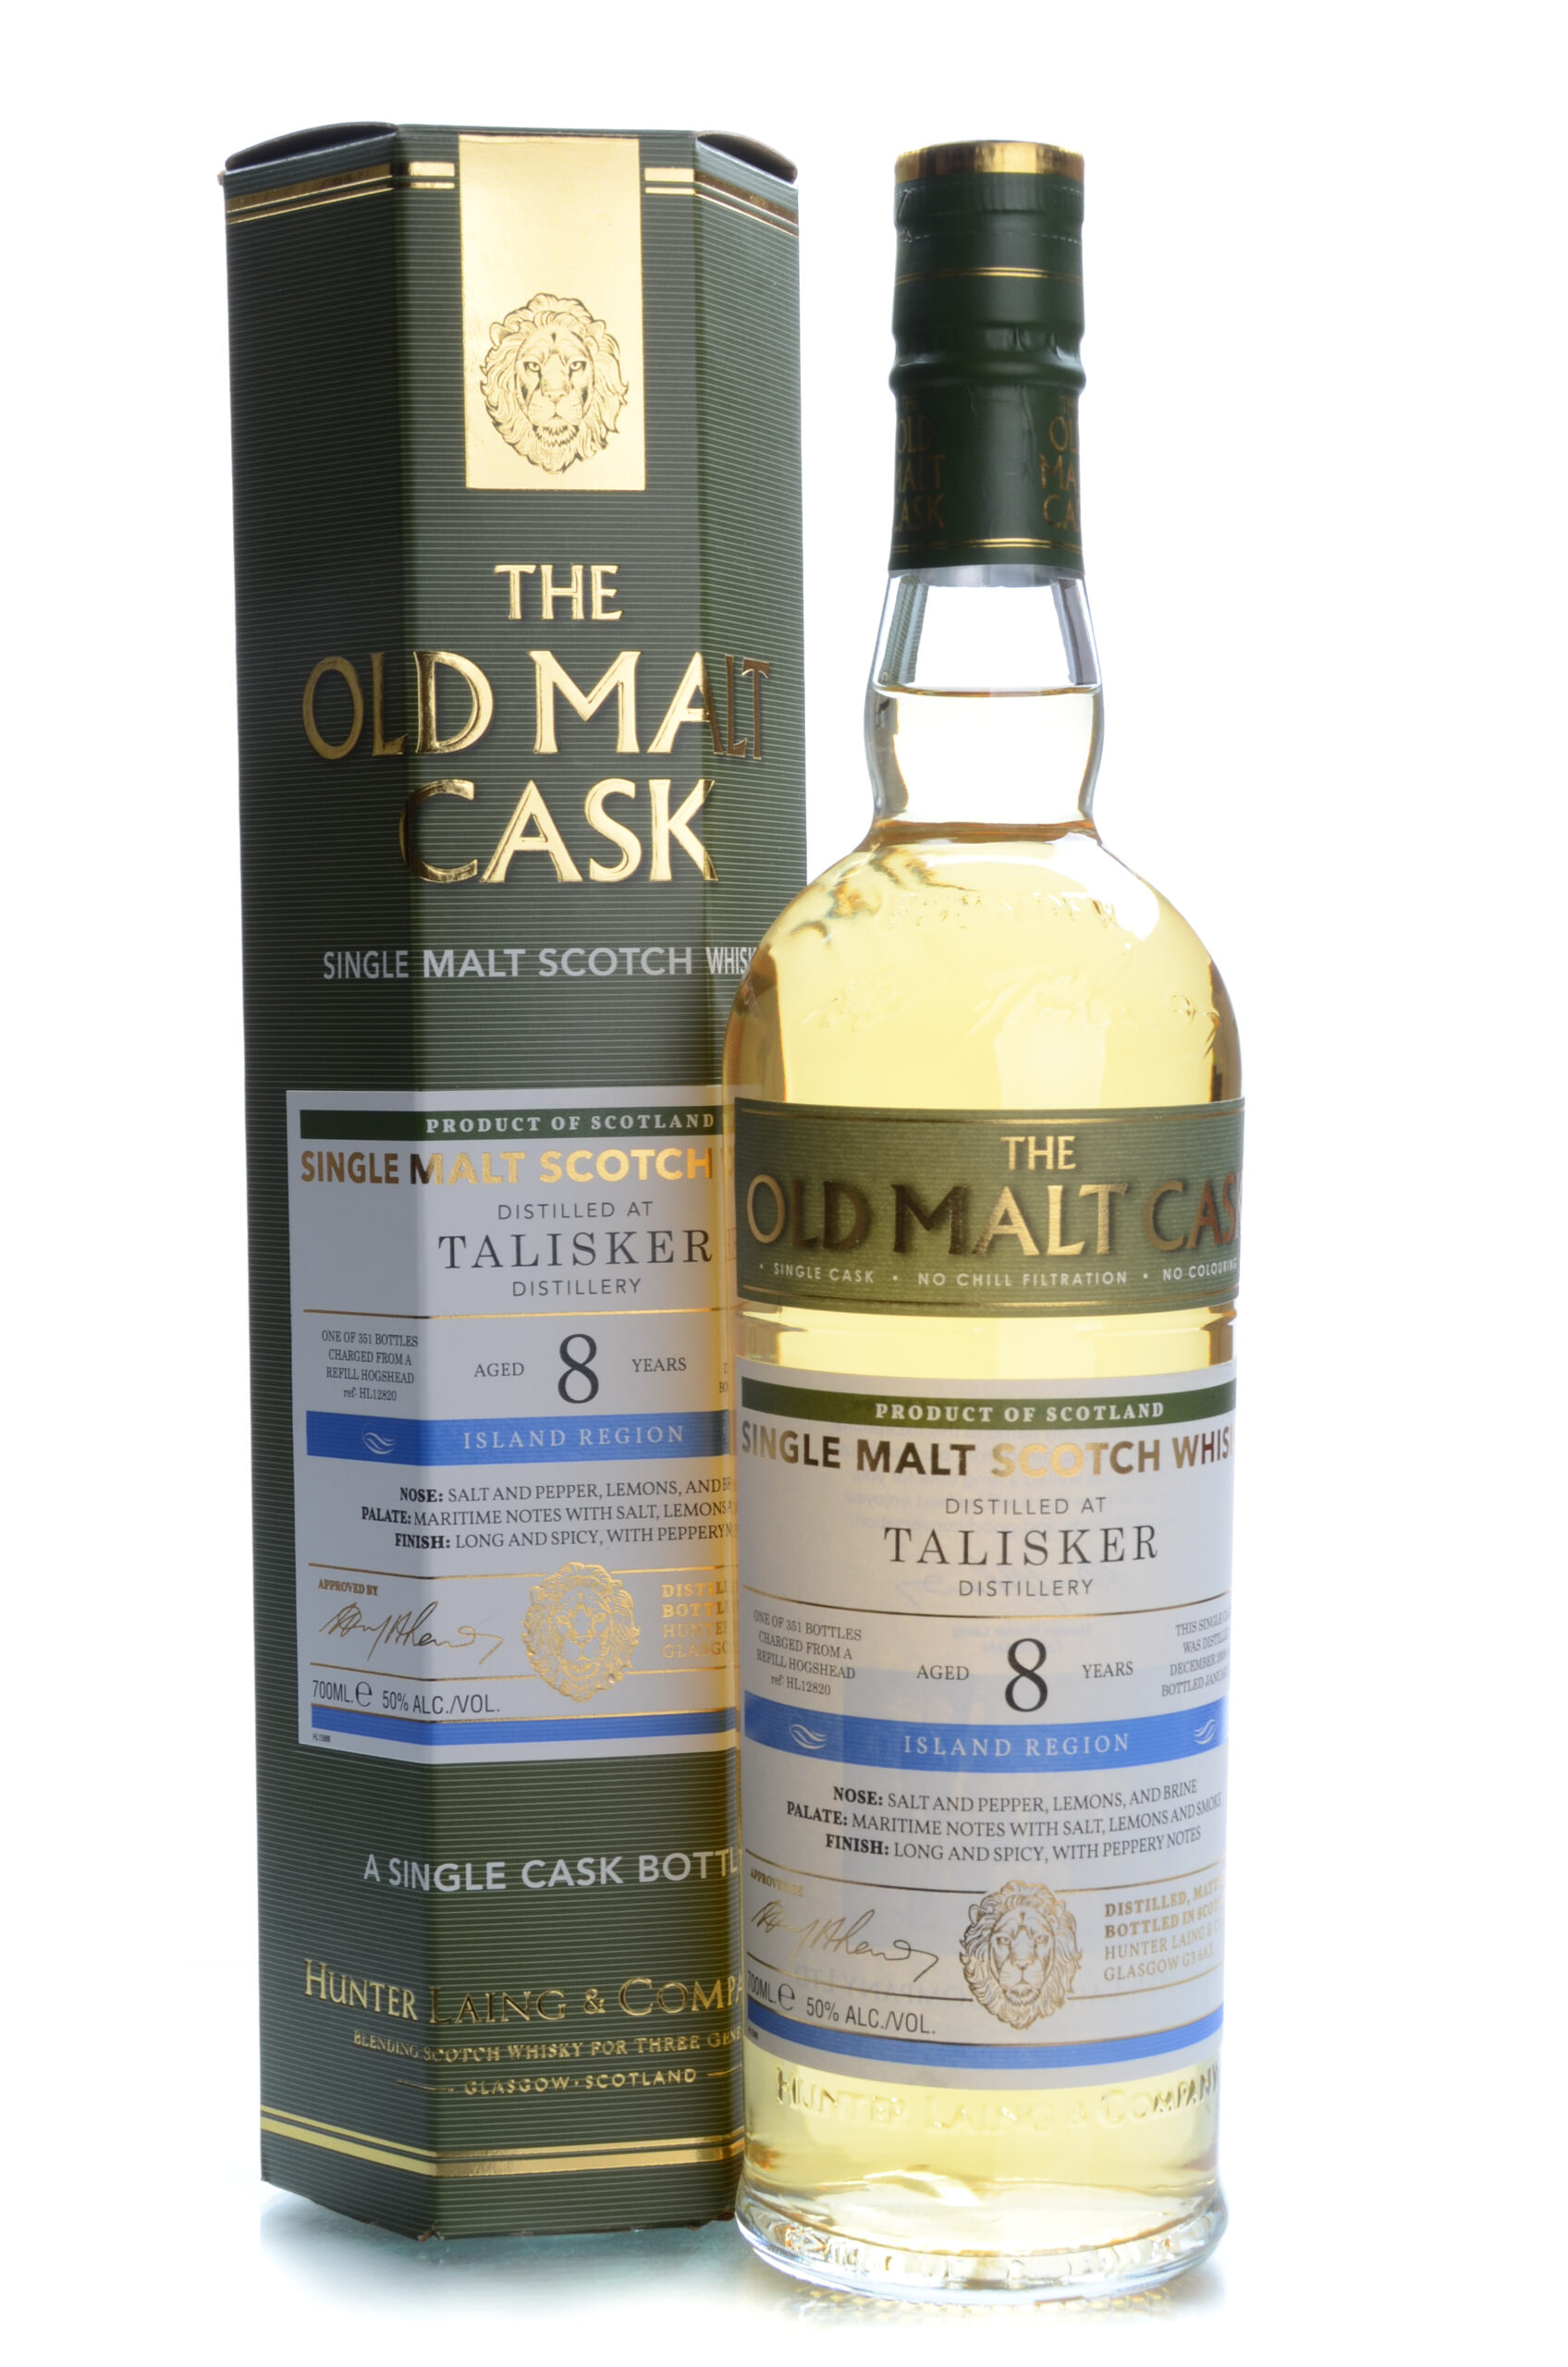 The Old Cask 8 years